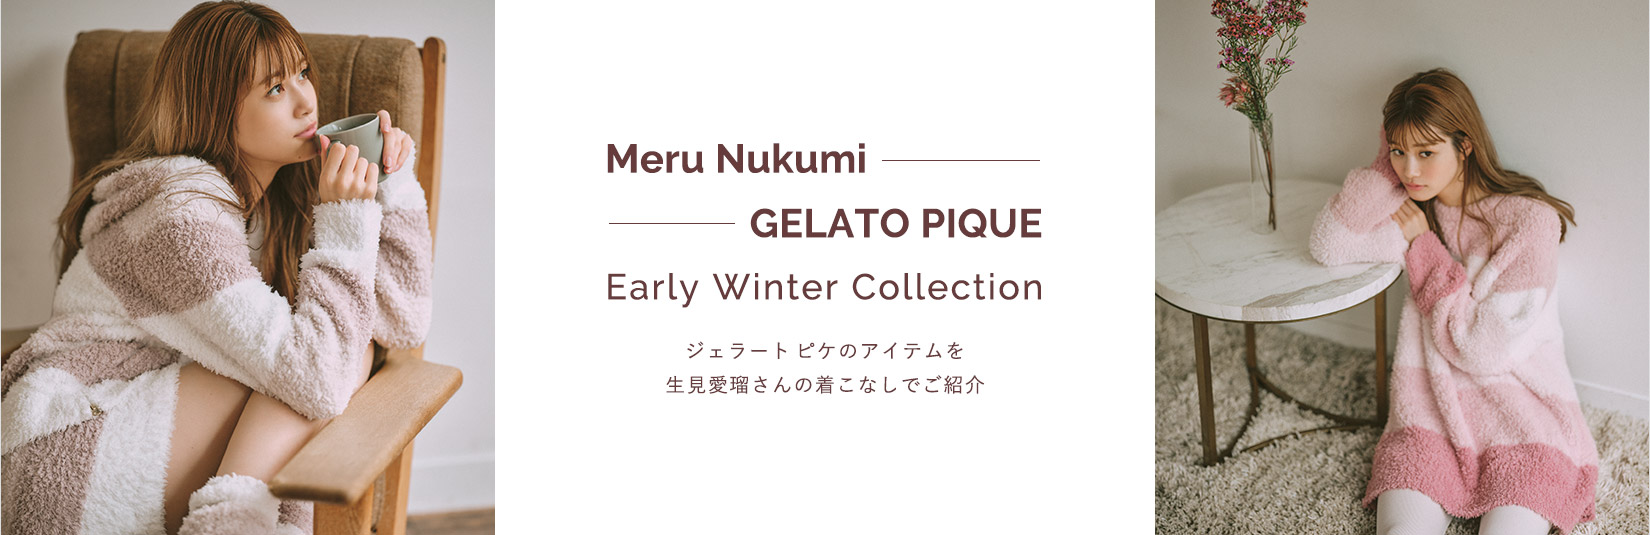 Meru Nukumi GELATO PIQUE Early Winter Collection